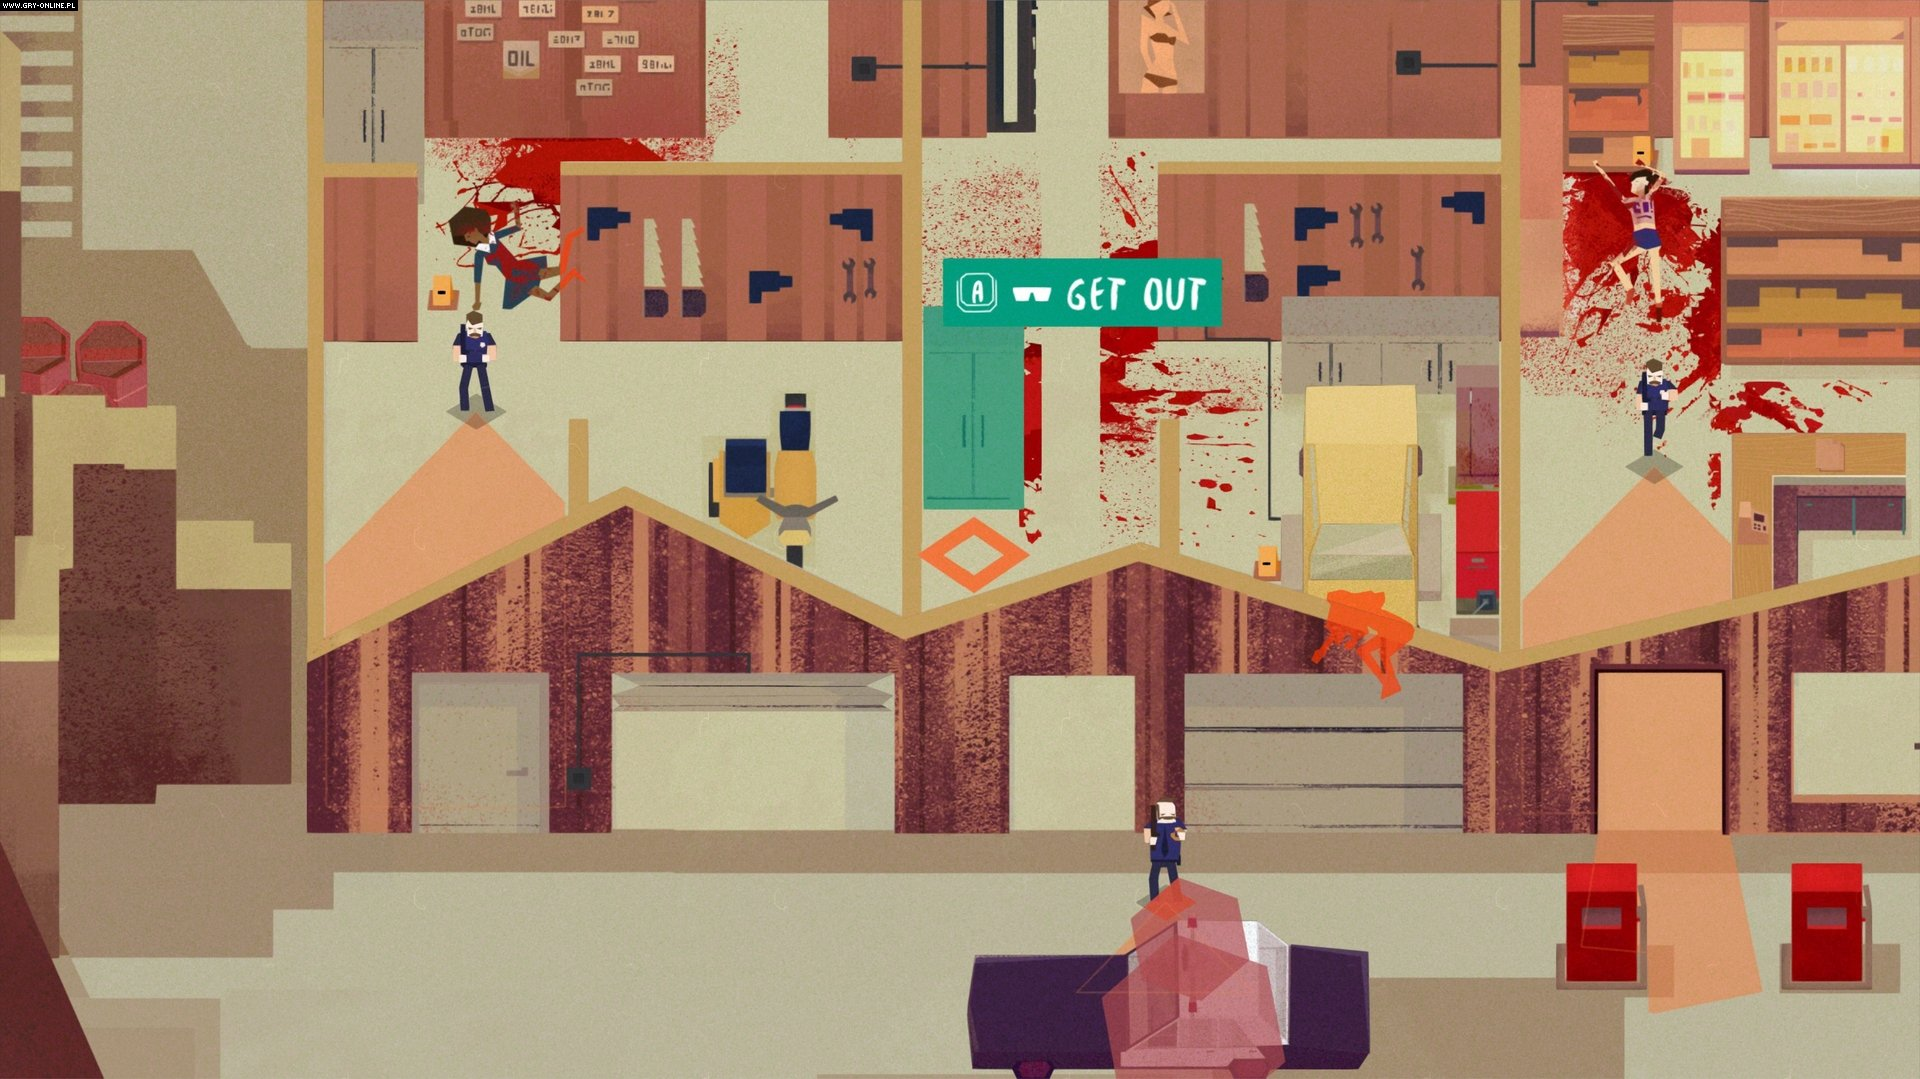 Serial Cleaner PC, PS4, XONE, Switch Gry Screen 1/28, iFun4all / Draw Distance, Curve Digital